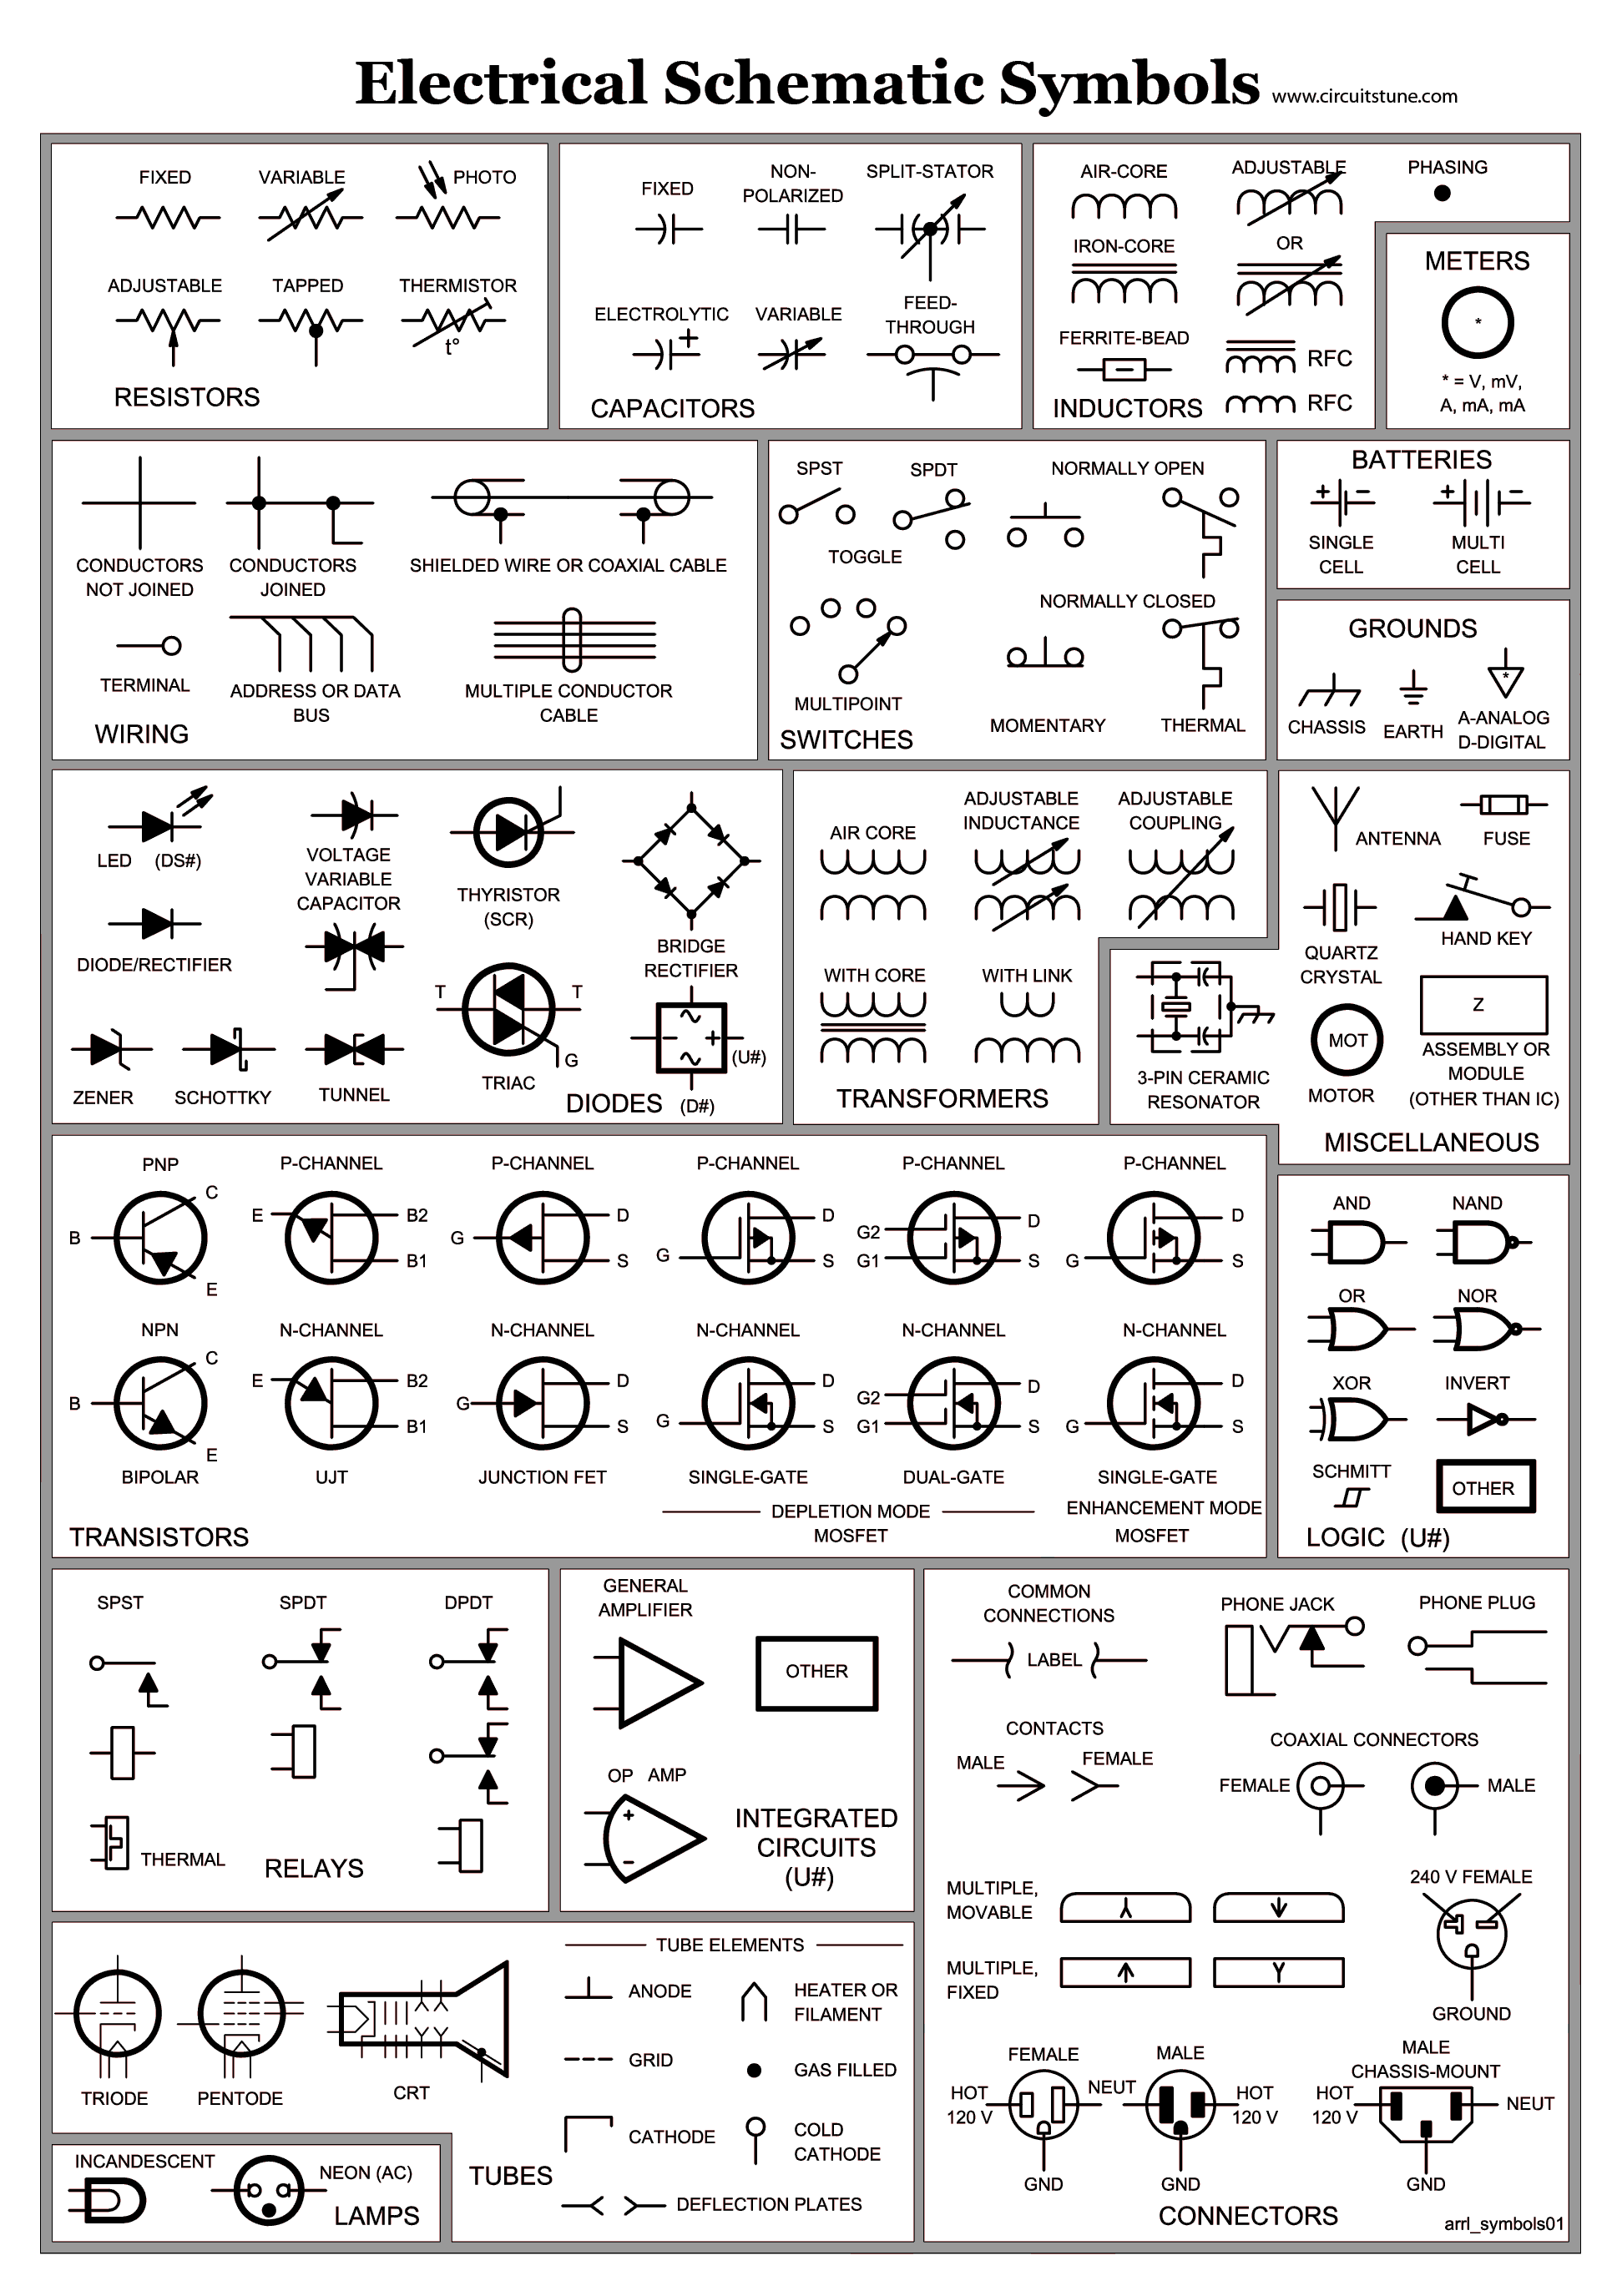 electrical schematic symbols skinsquiggles pinterest. Black Bedroom Furniture Sets. Home Design Ideas